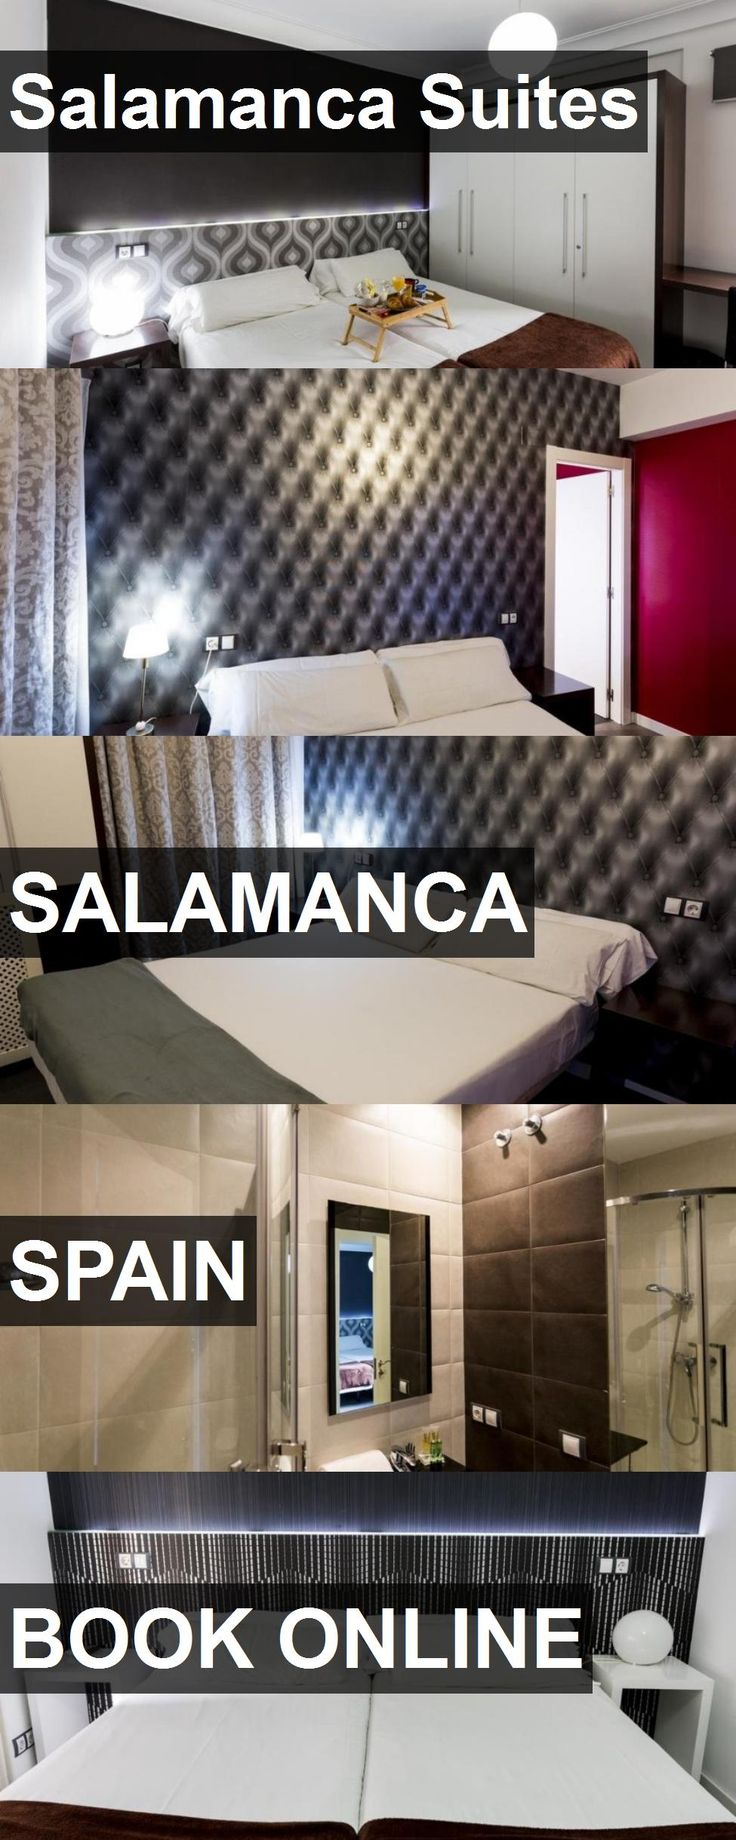 Hotel Salamanca Suites in Salamanca, Spain. For more information, photos, reviews and best prices please follow the link. #Spain #Salamanca #SalamancaSuites #hotel #travel #vacation